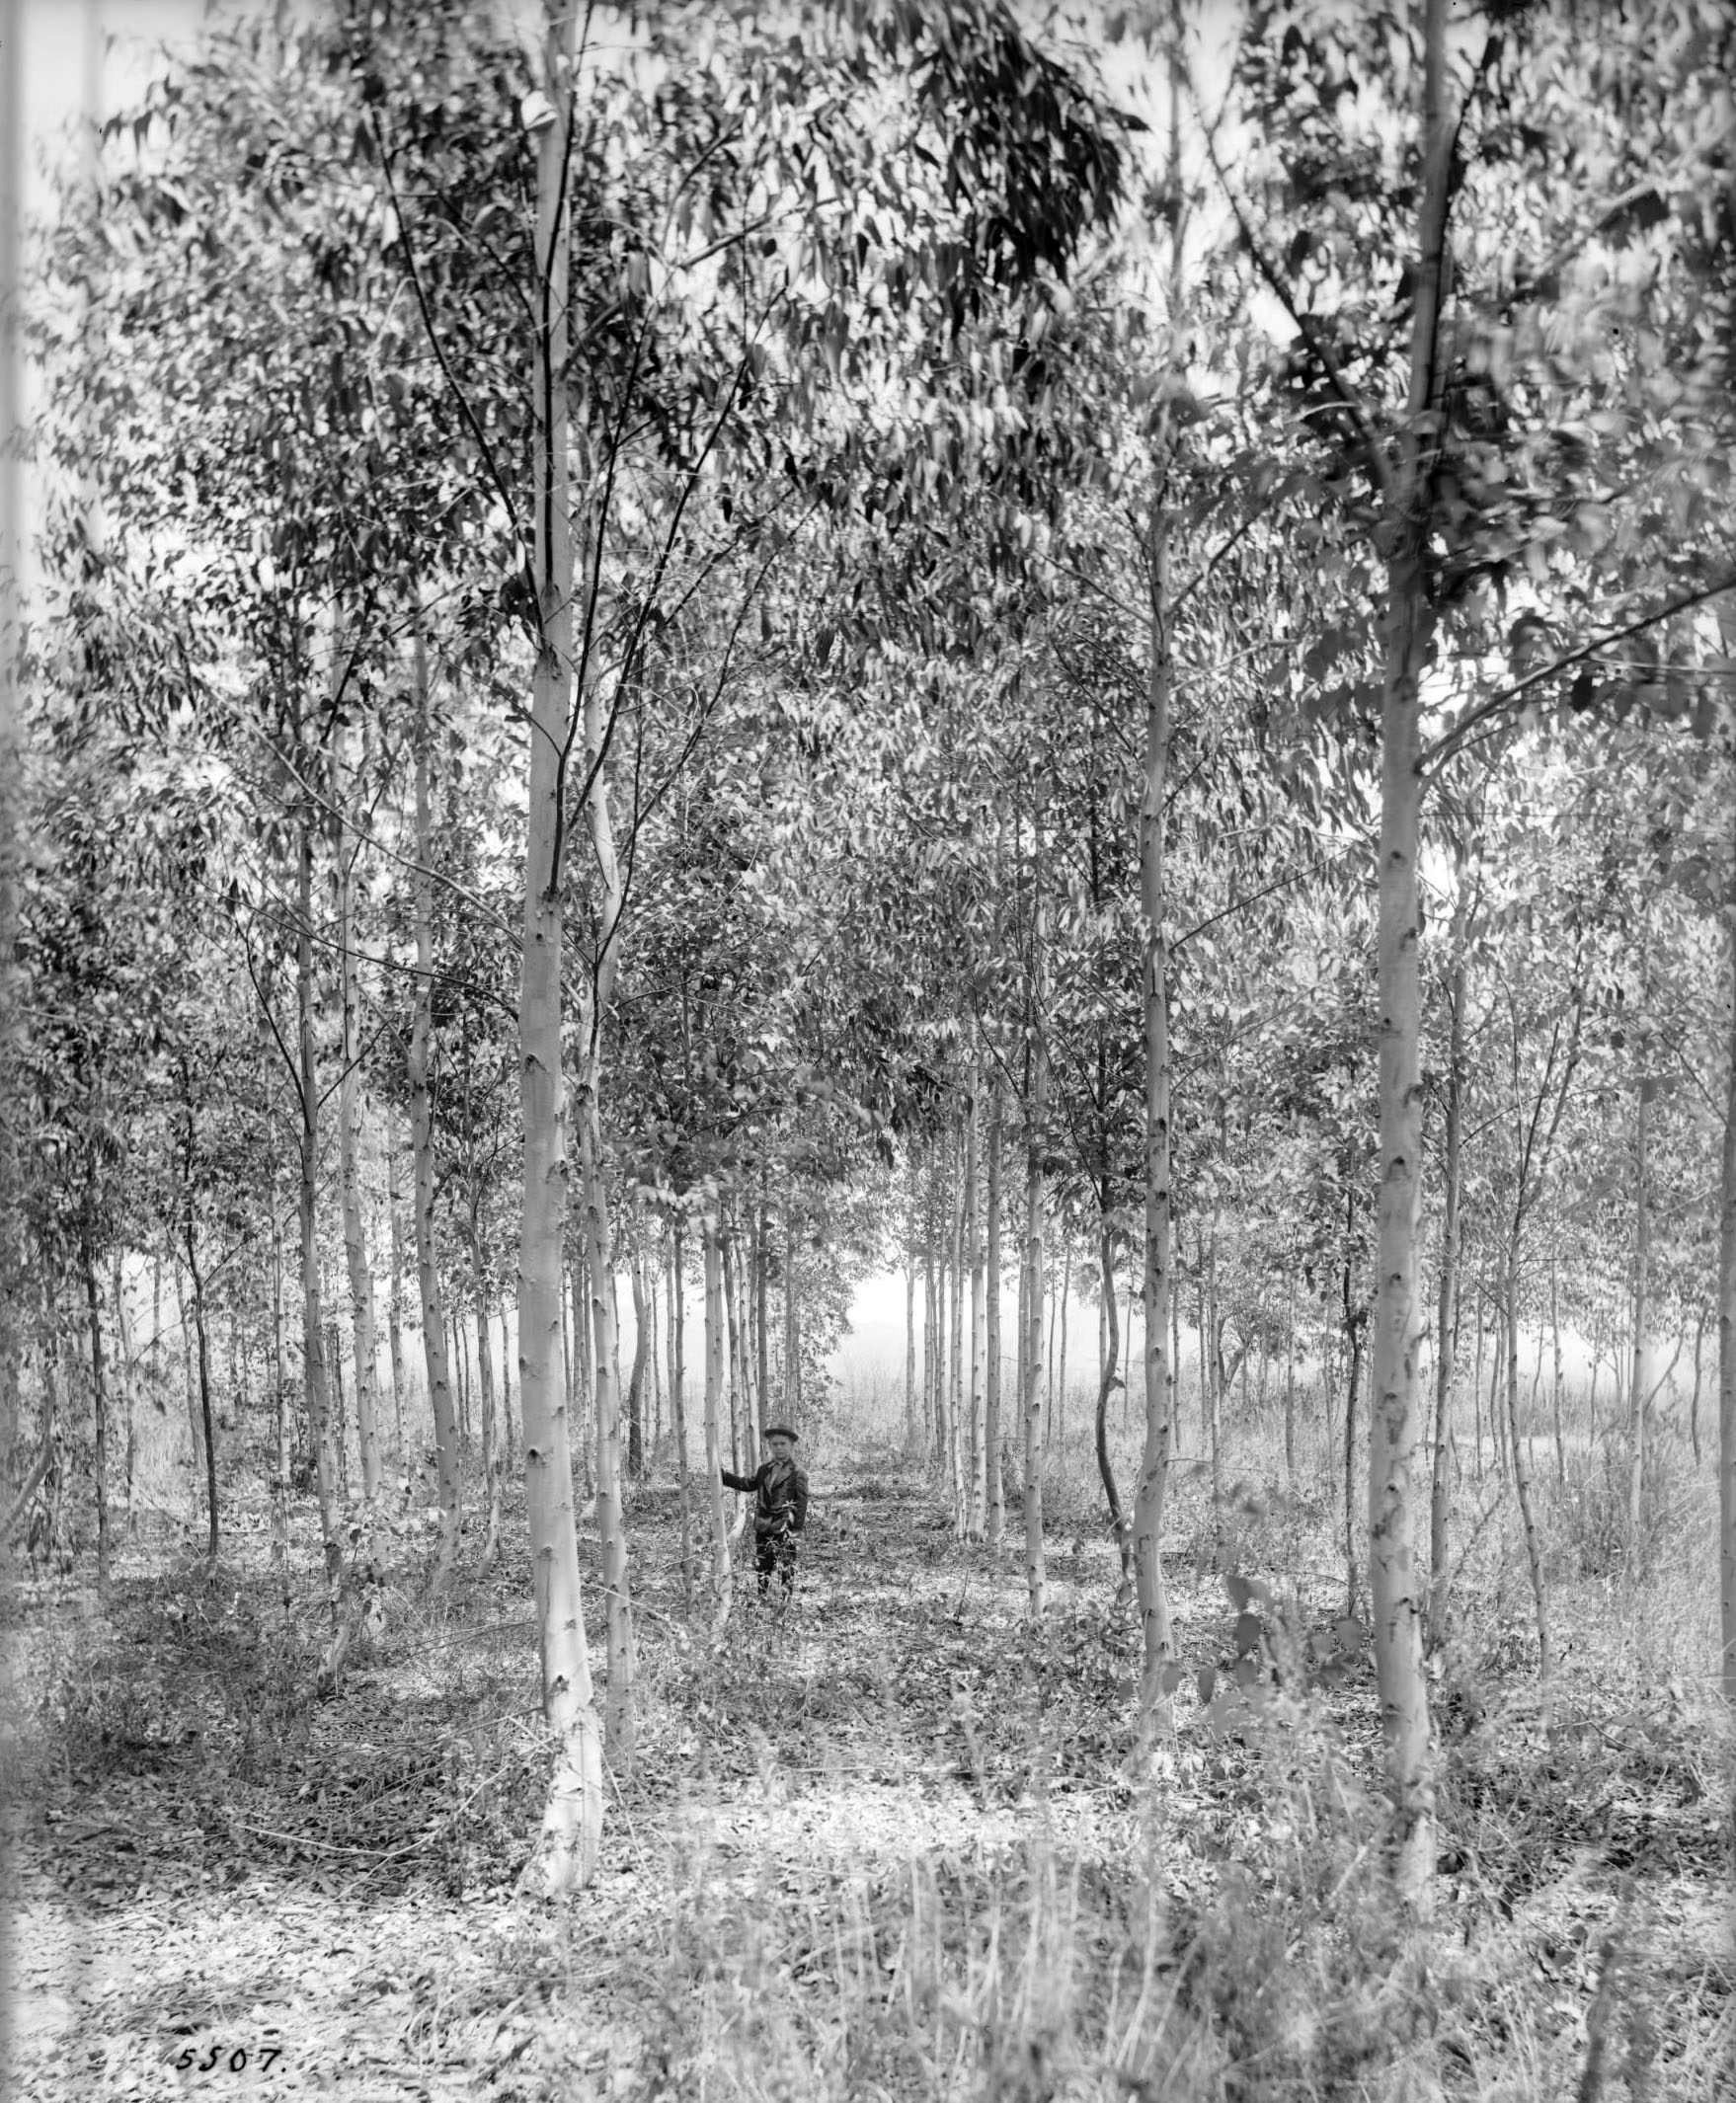 A boy stands in one of the eucalyptus groves at Kinney's Santa Monica forestry station. Courtesy of the Title Insurance and Trust / C.C. Pierce Photography Collection, USC Libraries.